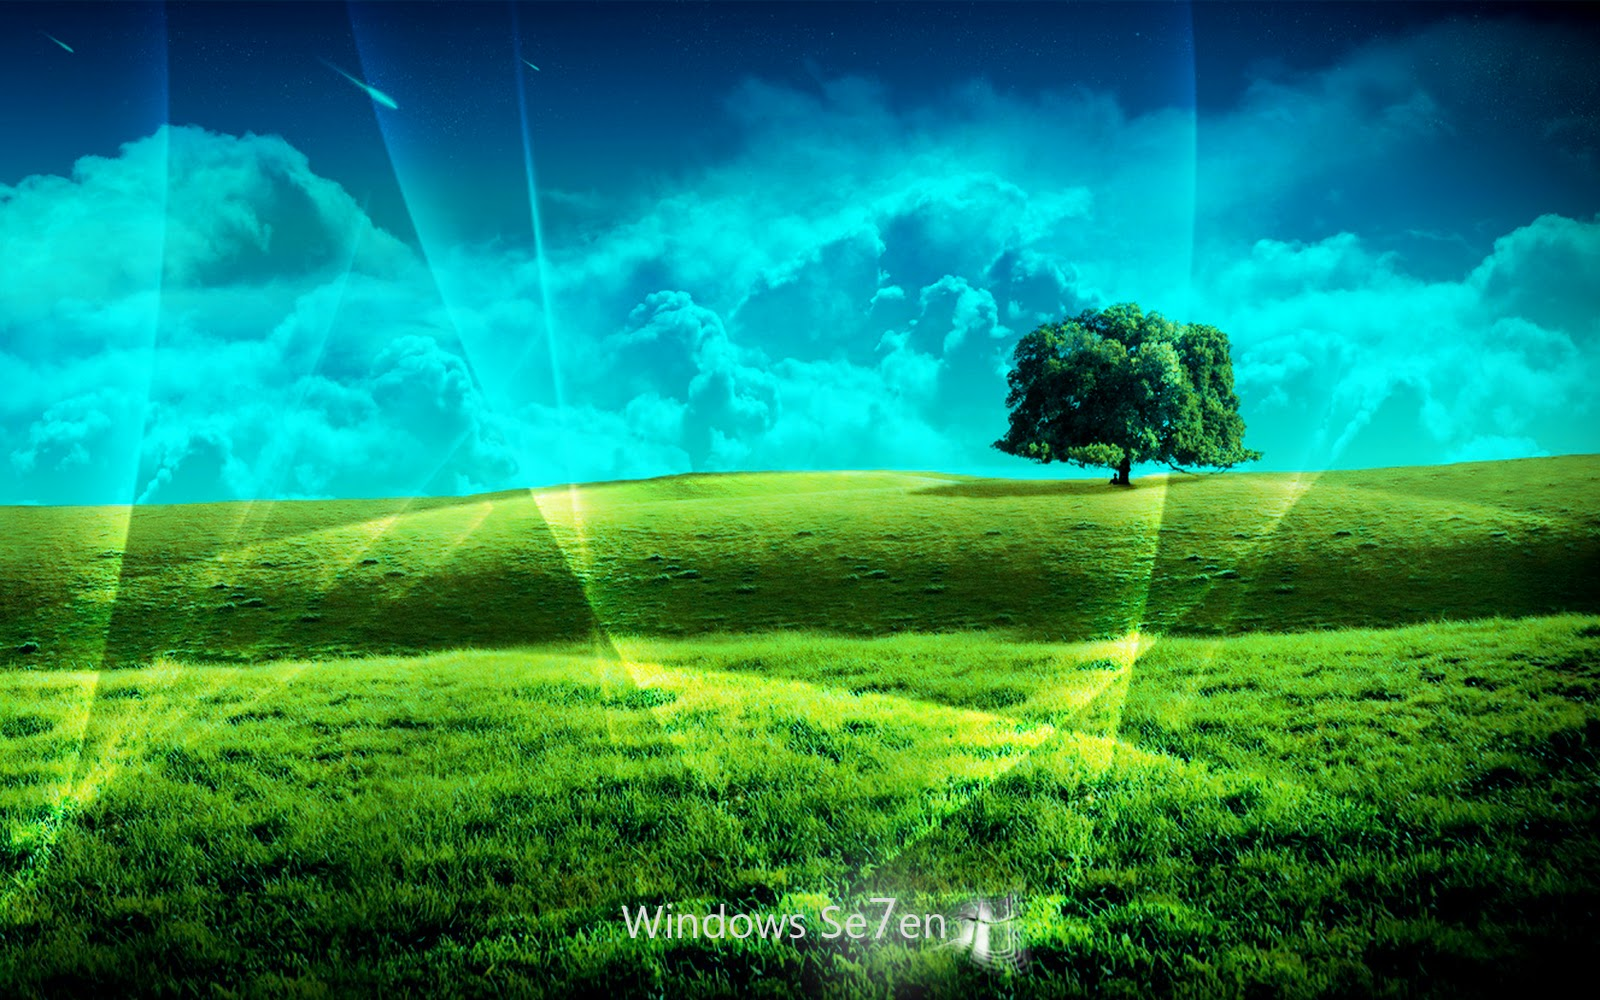 Windows 7 Natural Desktop Best Quality Wallpapers here you can see 1600x1000